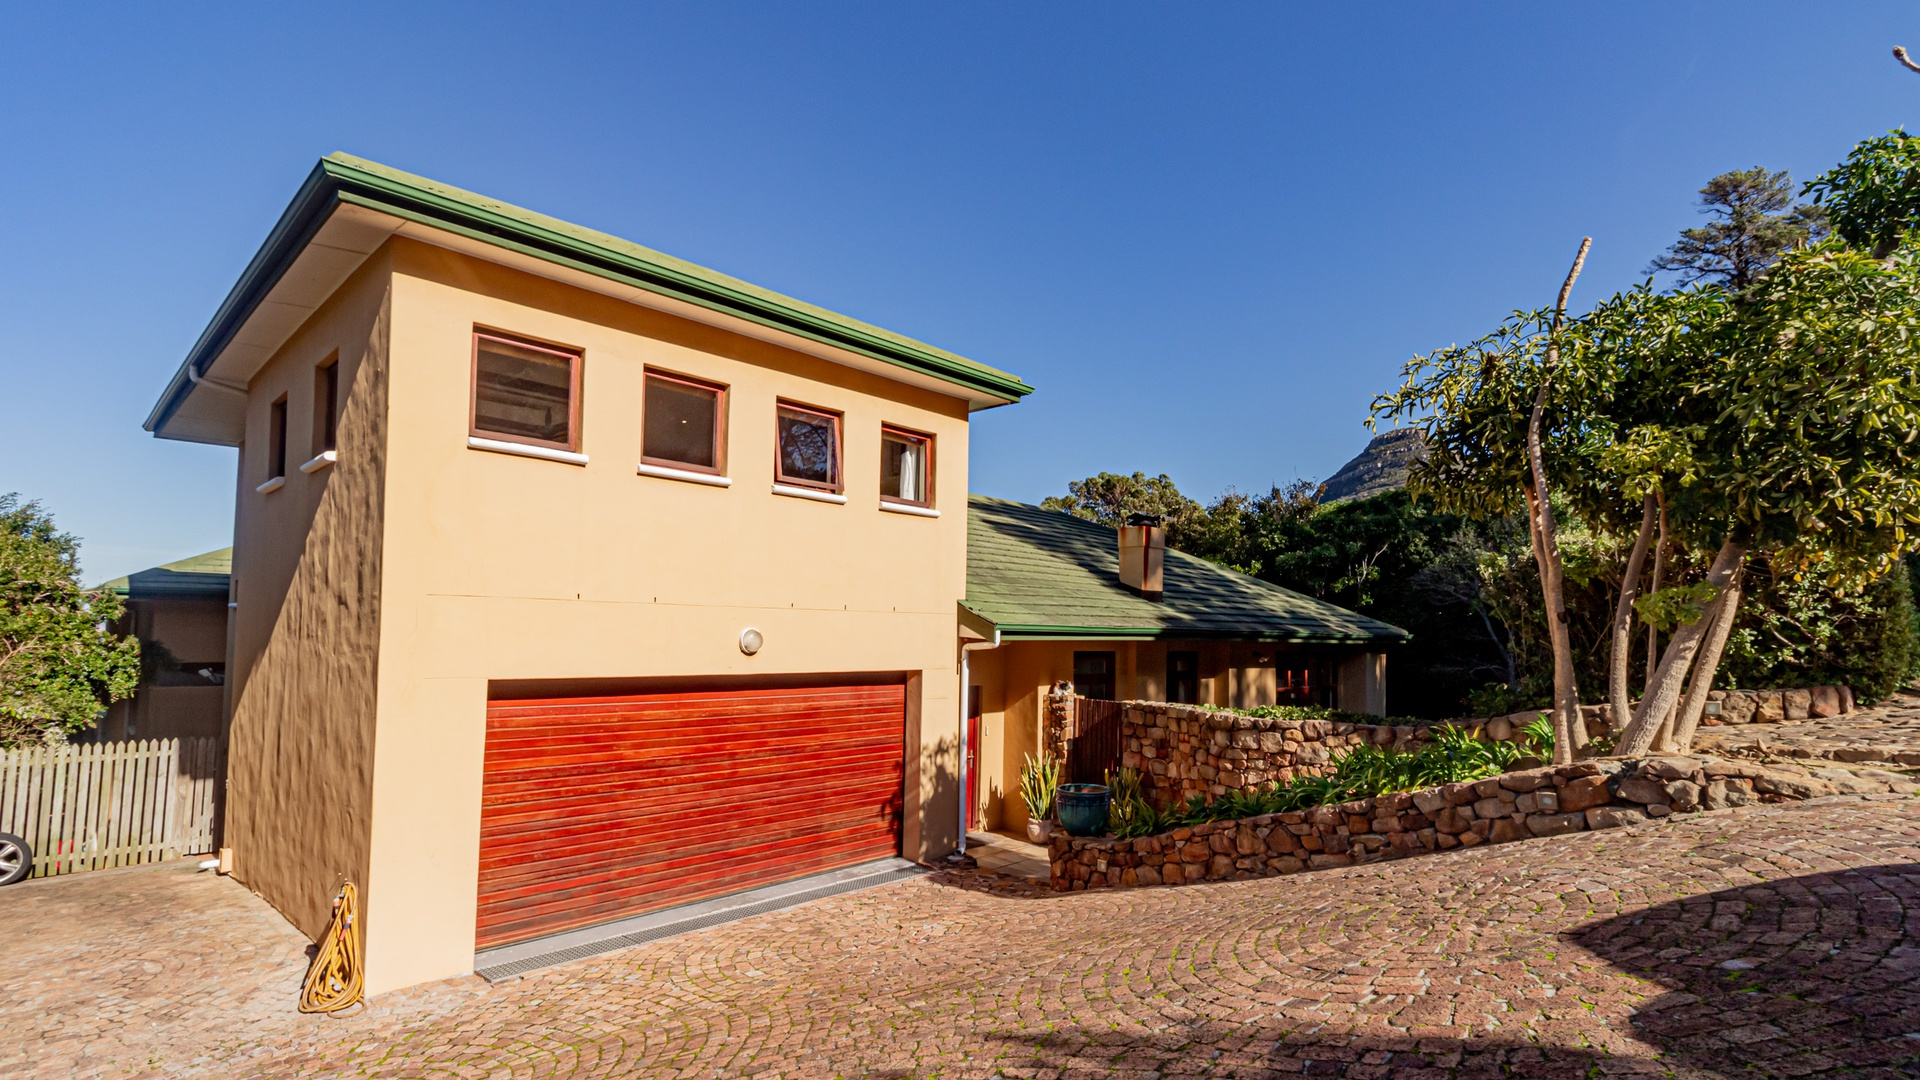 House in Hout Bay - Image-044.jpg